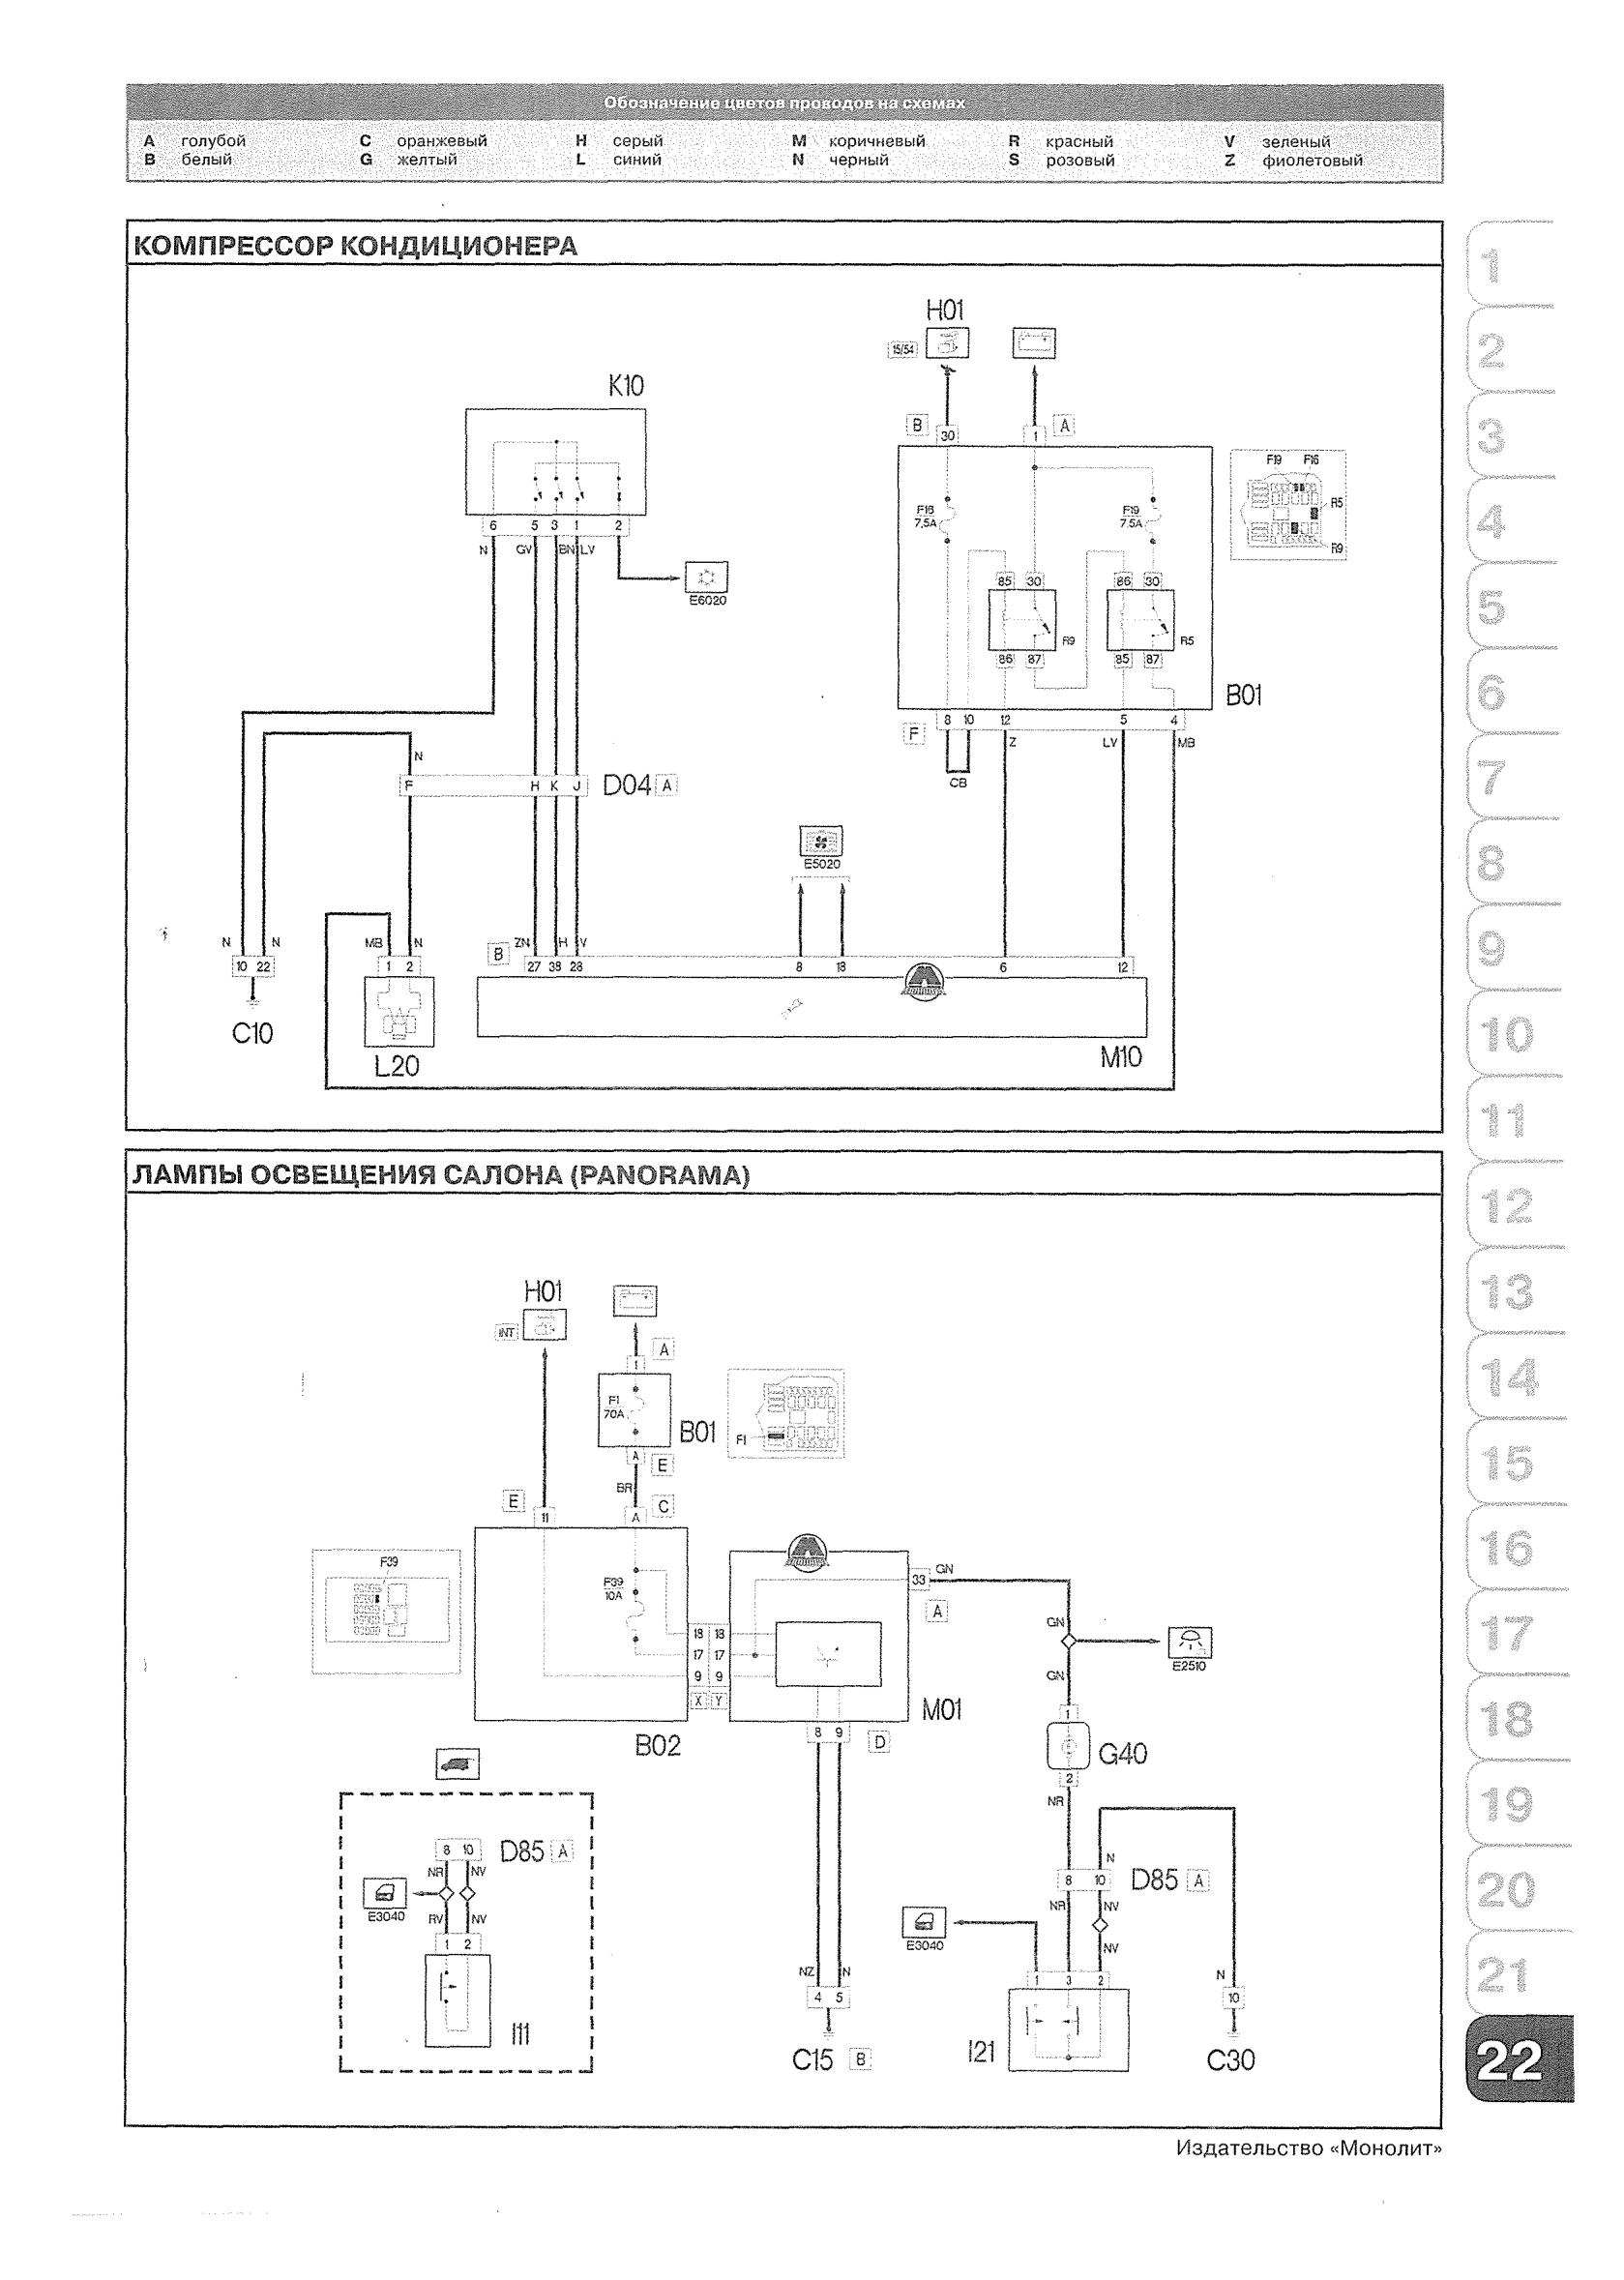 Diagram besides parts of a sewing machine diagram besides fiat diagram e2 80 93 wirings further fiat